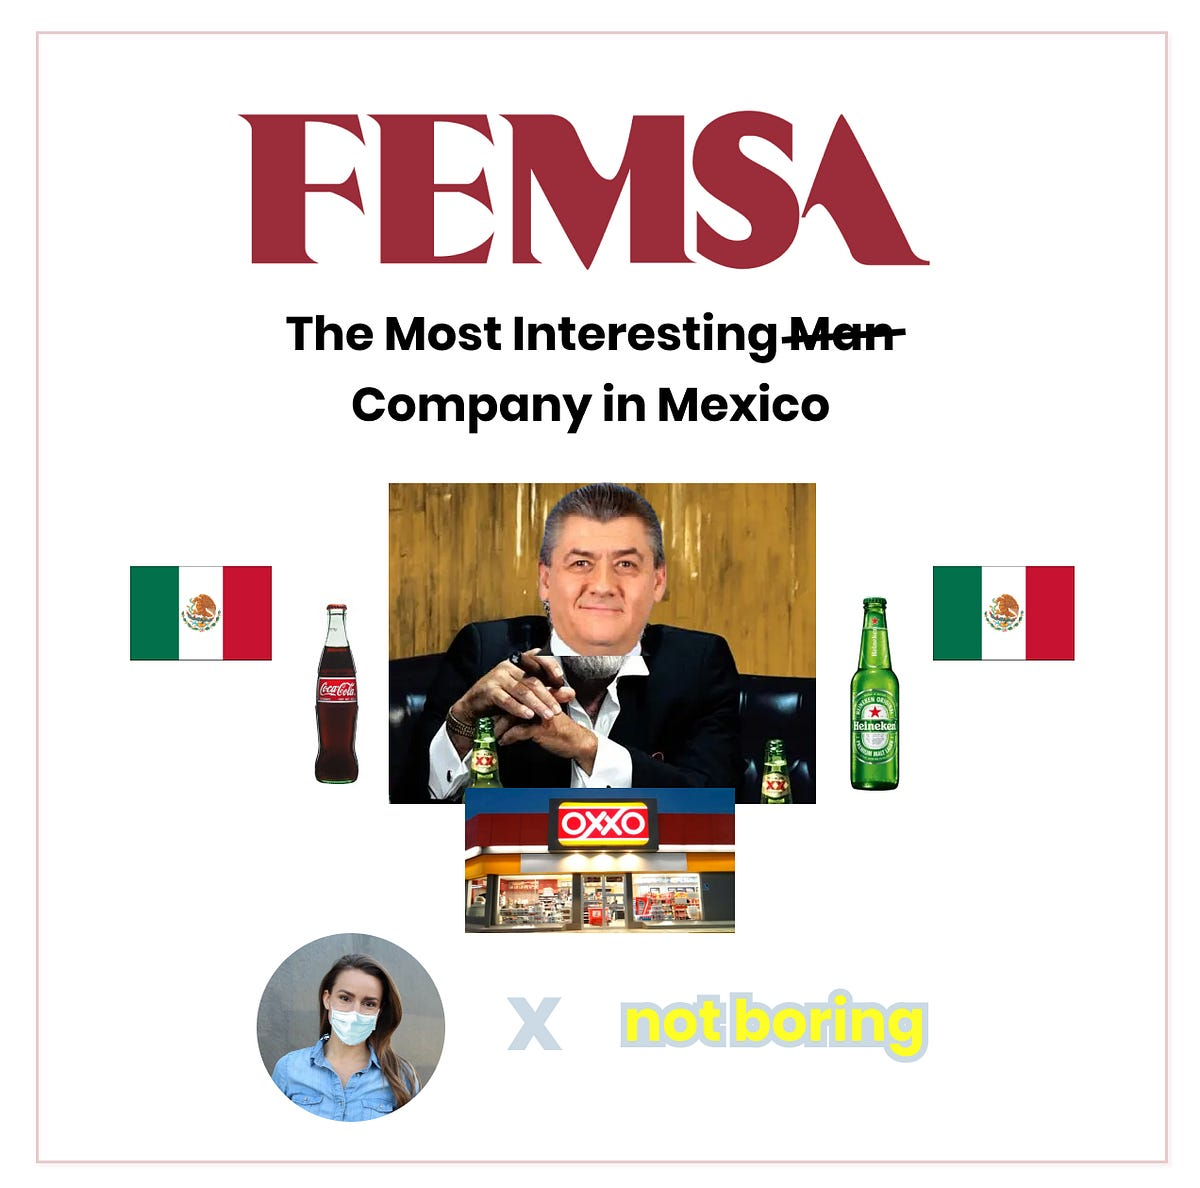 Fortnite Catalyst X Male Reader Femsa The Most Interesting Company In Mexico By Packy Mccormick Not Boring By Packy Mccormick